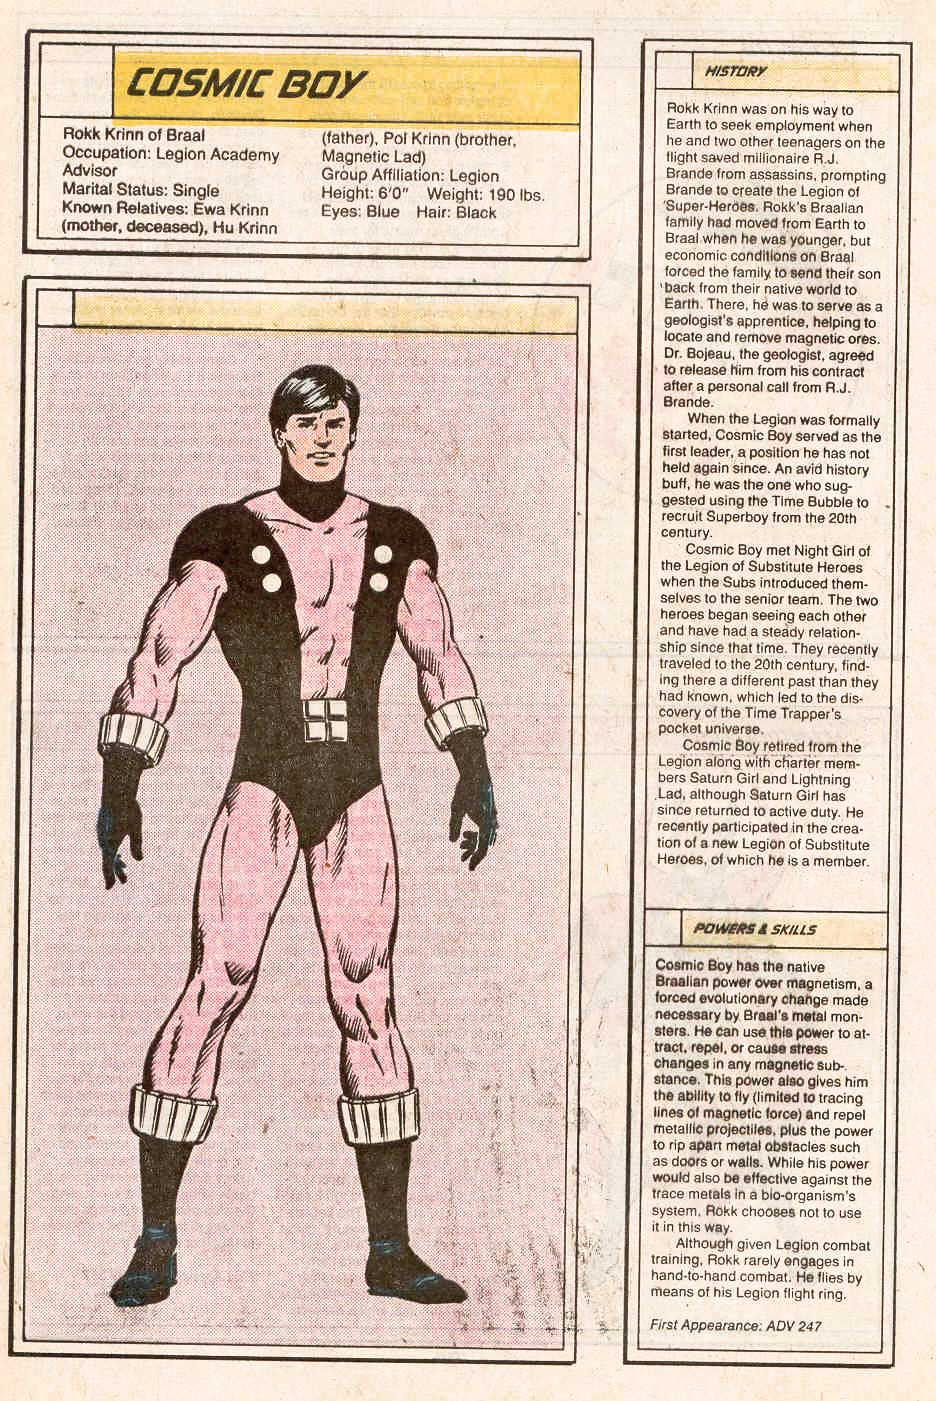 Cosmic Boy by Curt Swan and Grant Miehm - Who's Who in the Legion of Super-Heroes #1